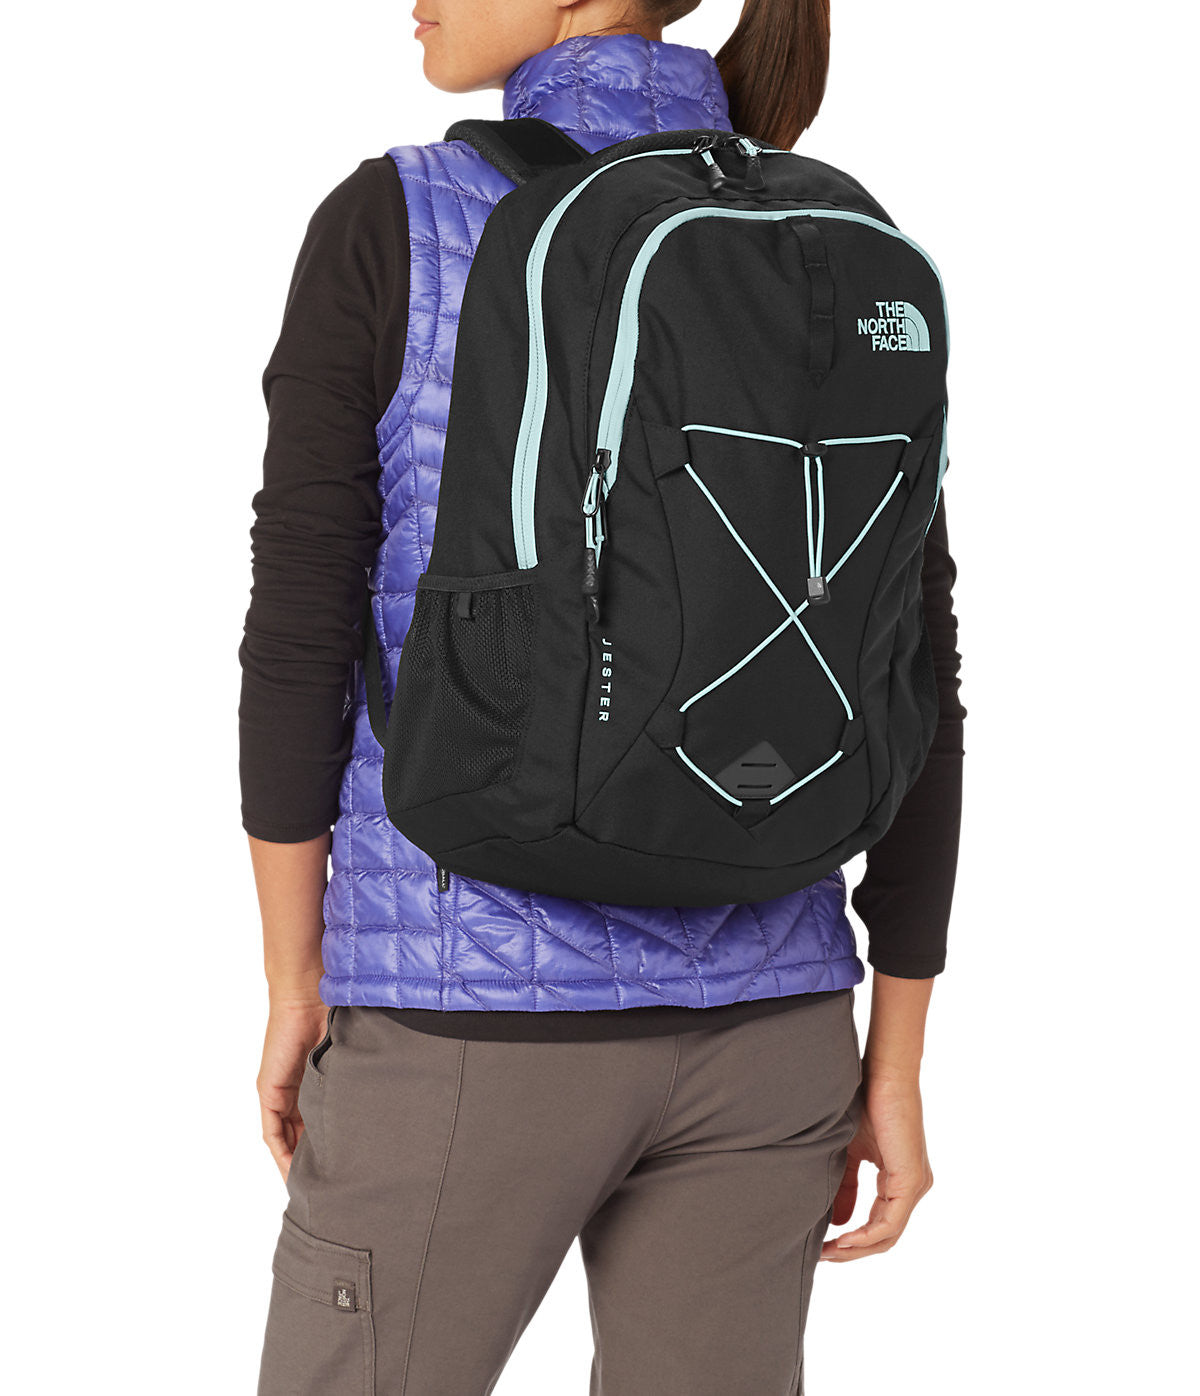 3a87b2fc8 Womens Jester Backpack North Face - CEAGESP